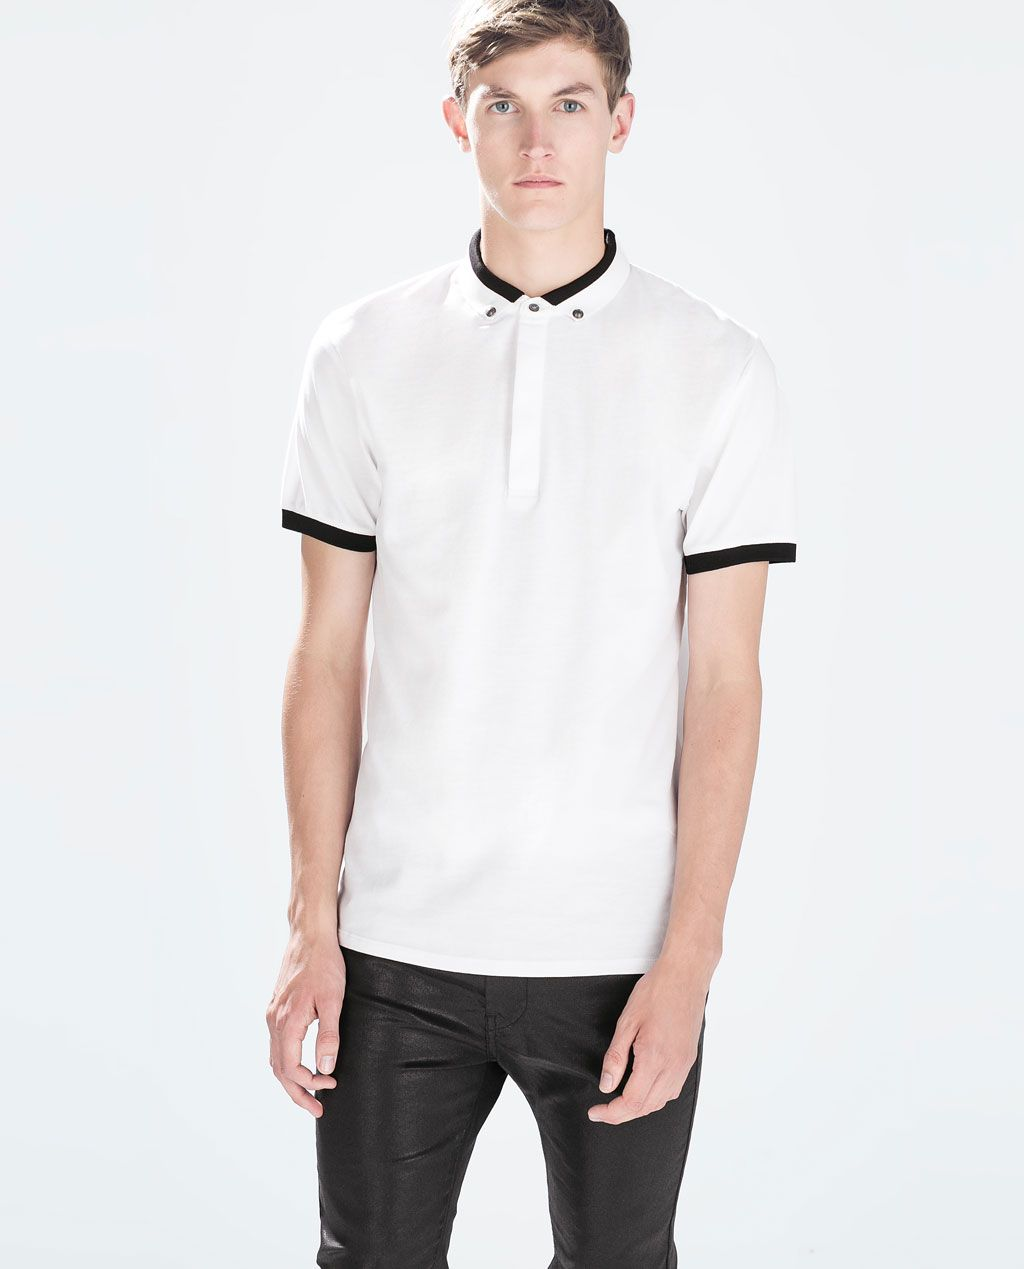 8c881cf3 ZARA WHITE TWO-COLOUR COLLAR POLO SHIRT £22.99 (0458/300) | Men's ...